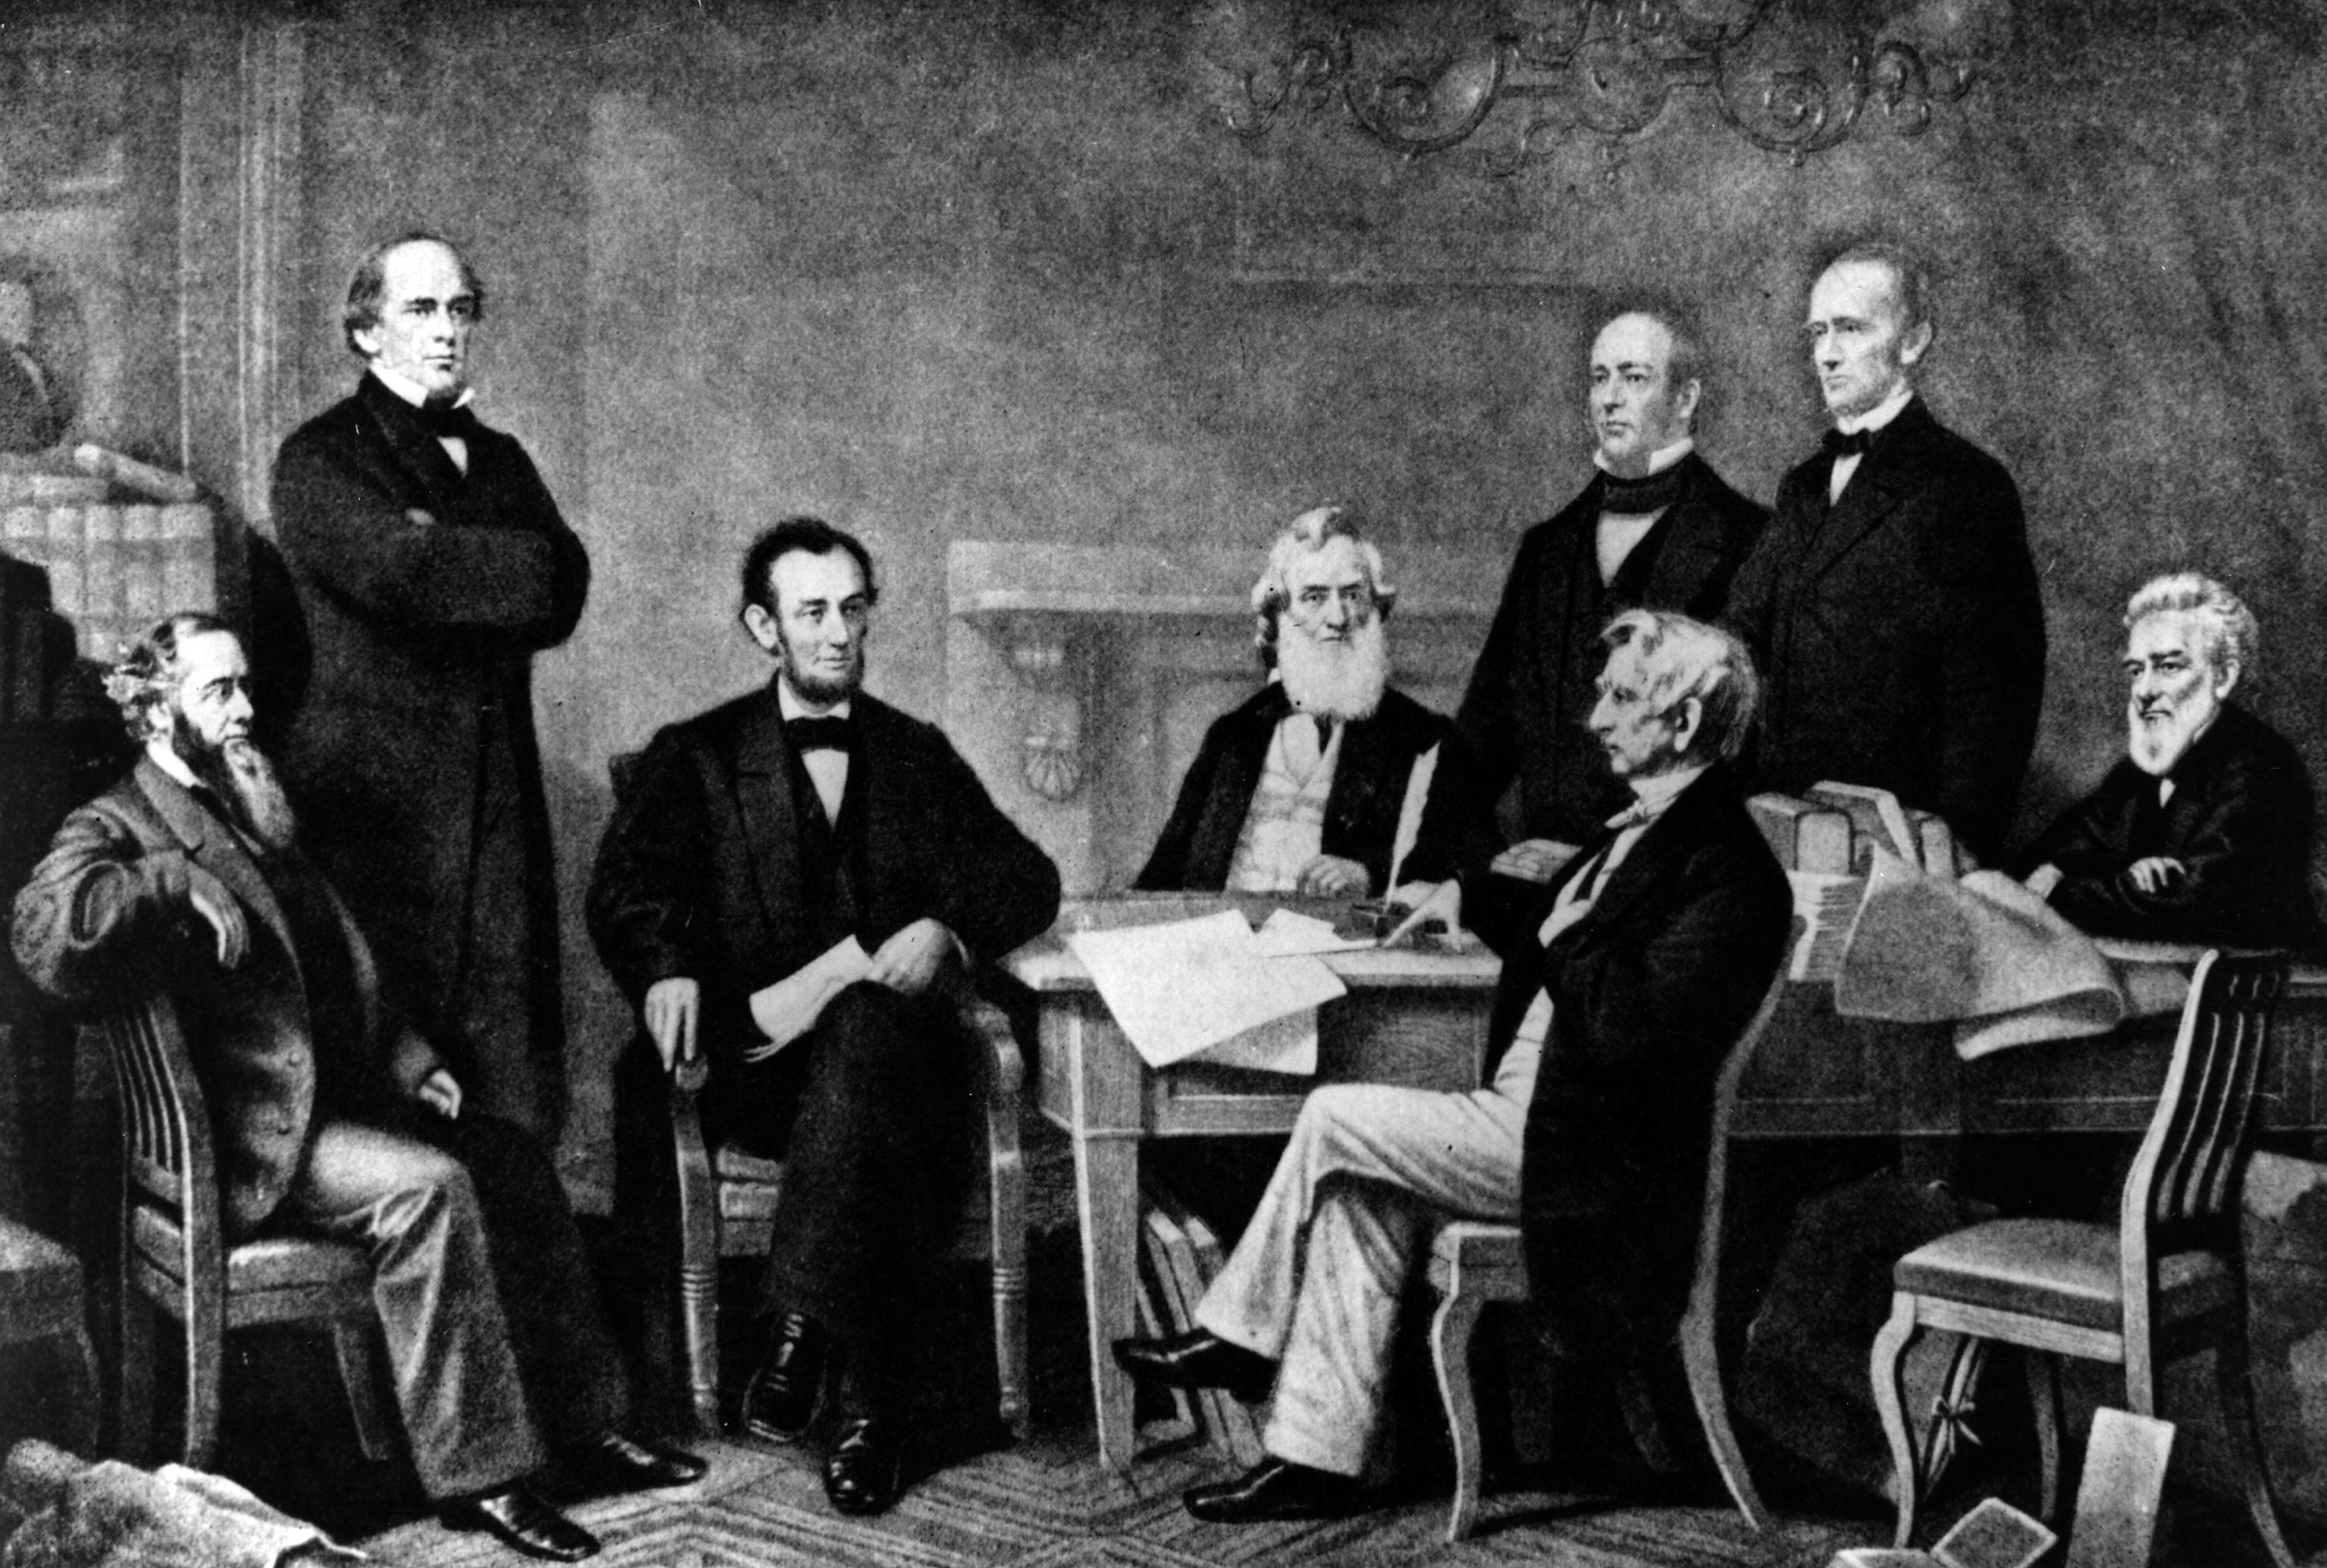 Abraham Lincoln at the signing of the Emancipation Proclamation, which gave slaves their freedom.